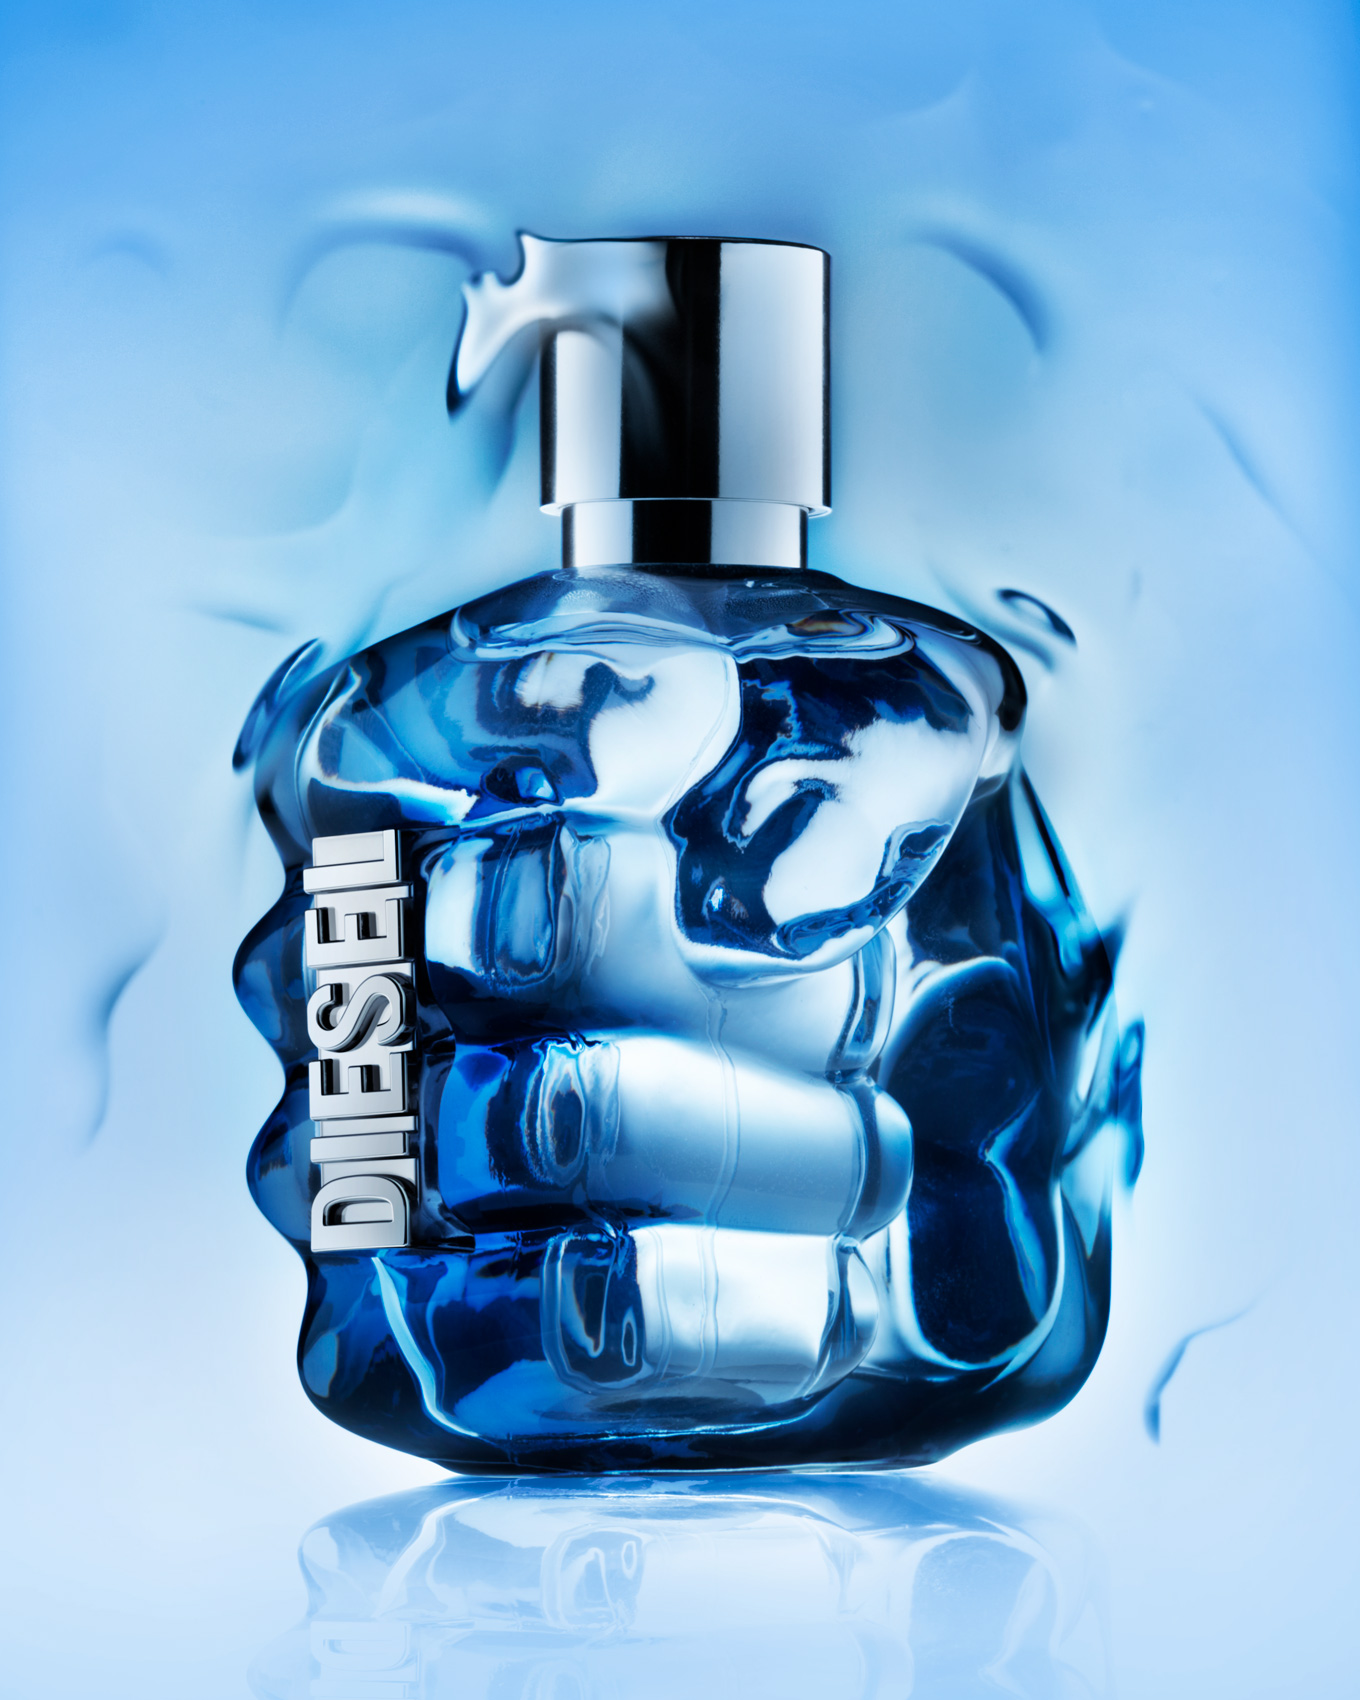 Musilek-Stan-Diesel-Cosmetics-Mens-Cologne-Product-Photographer-Advertising